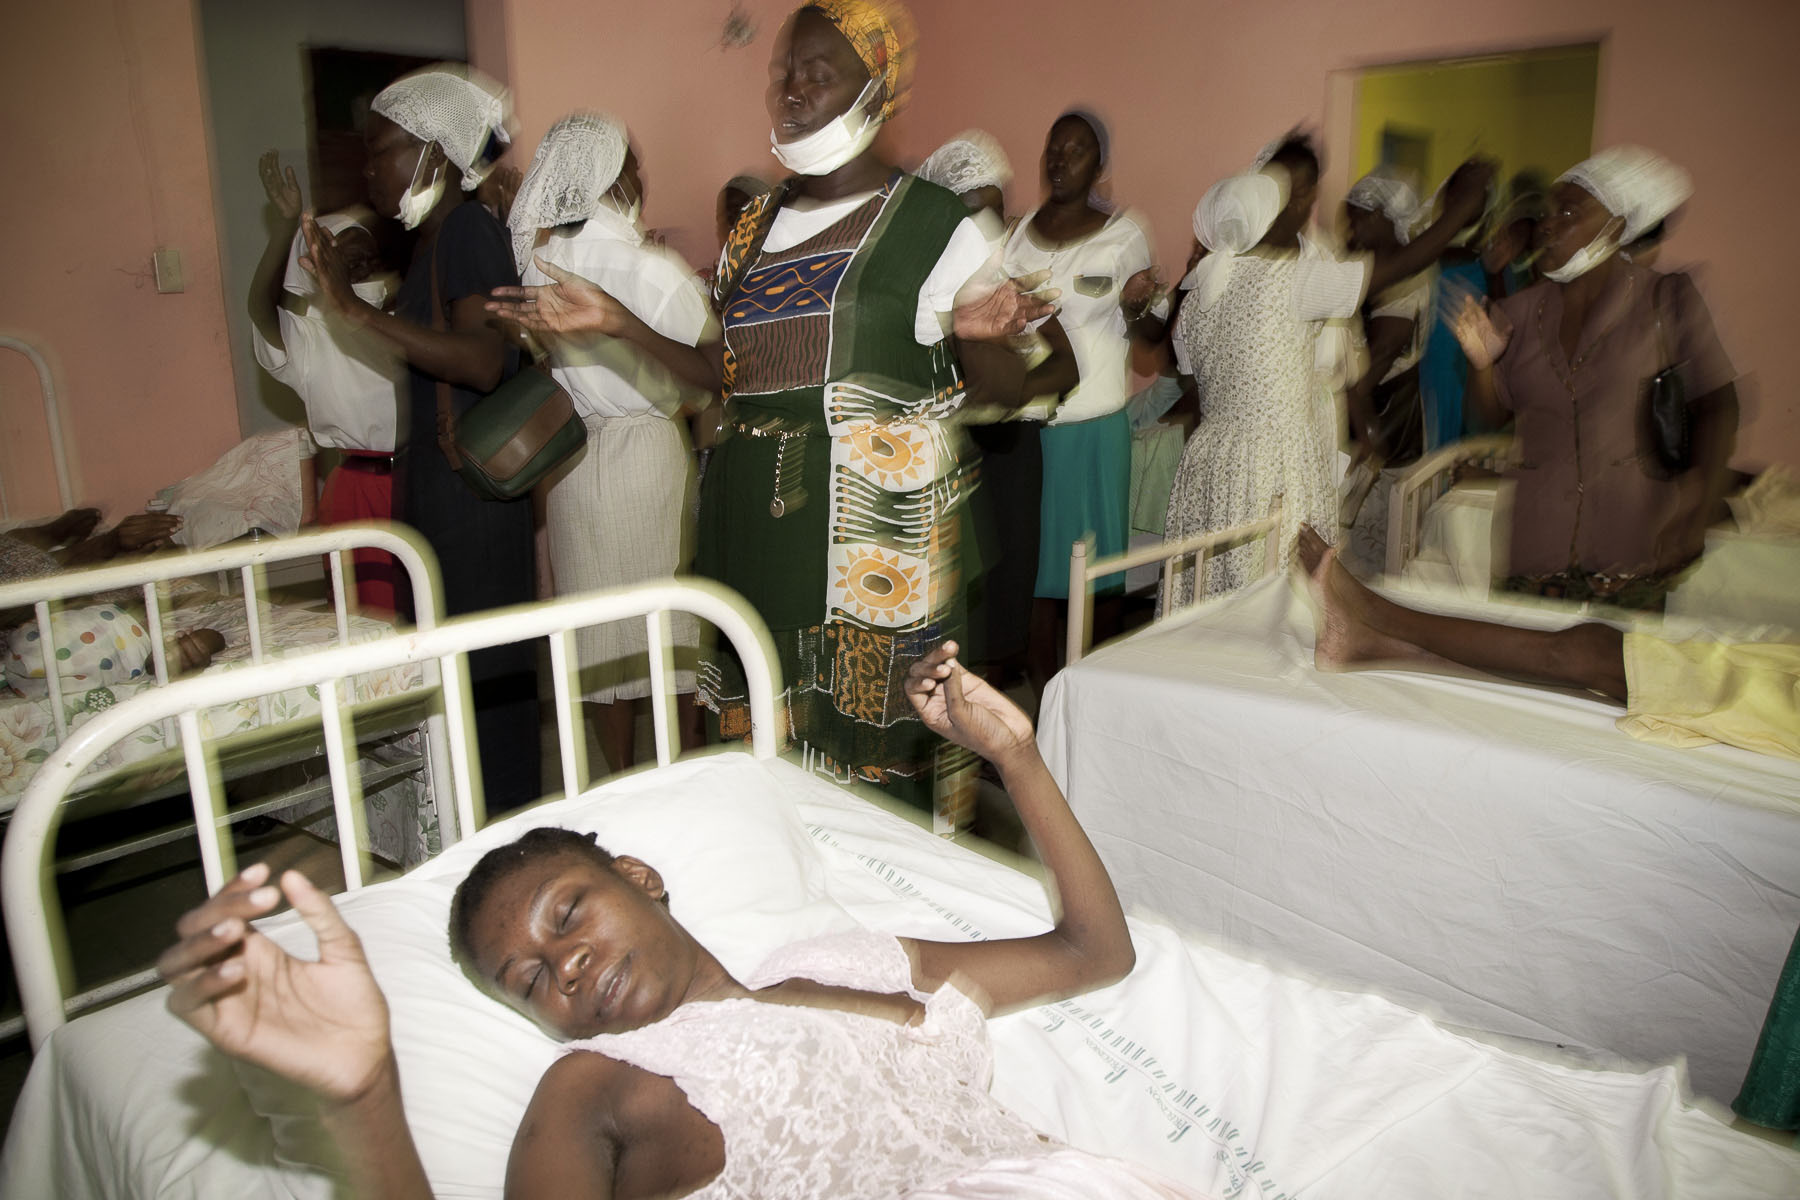 Believers of the Haiti First Christian Church visiting the sick at the Carrefour-Feuille sanatorium hospital in November 2003